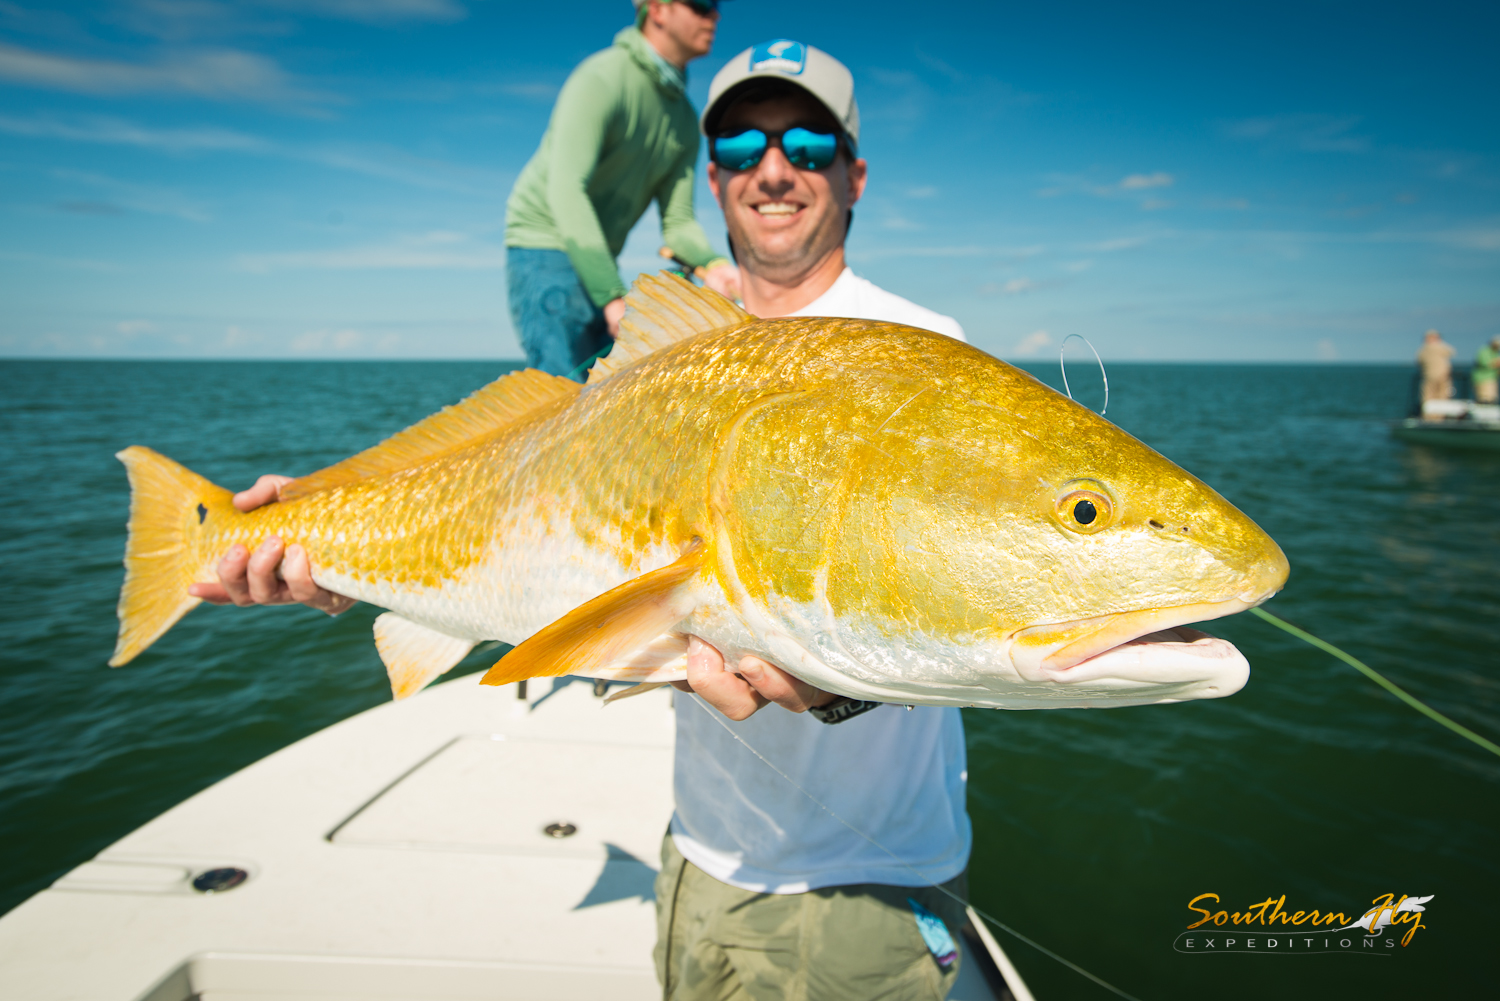 fly Fishing trips Delecroix la Southern Fly Expeditions